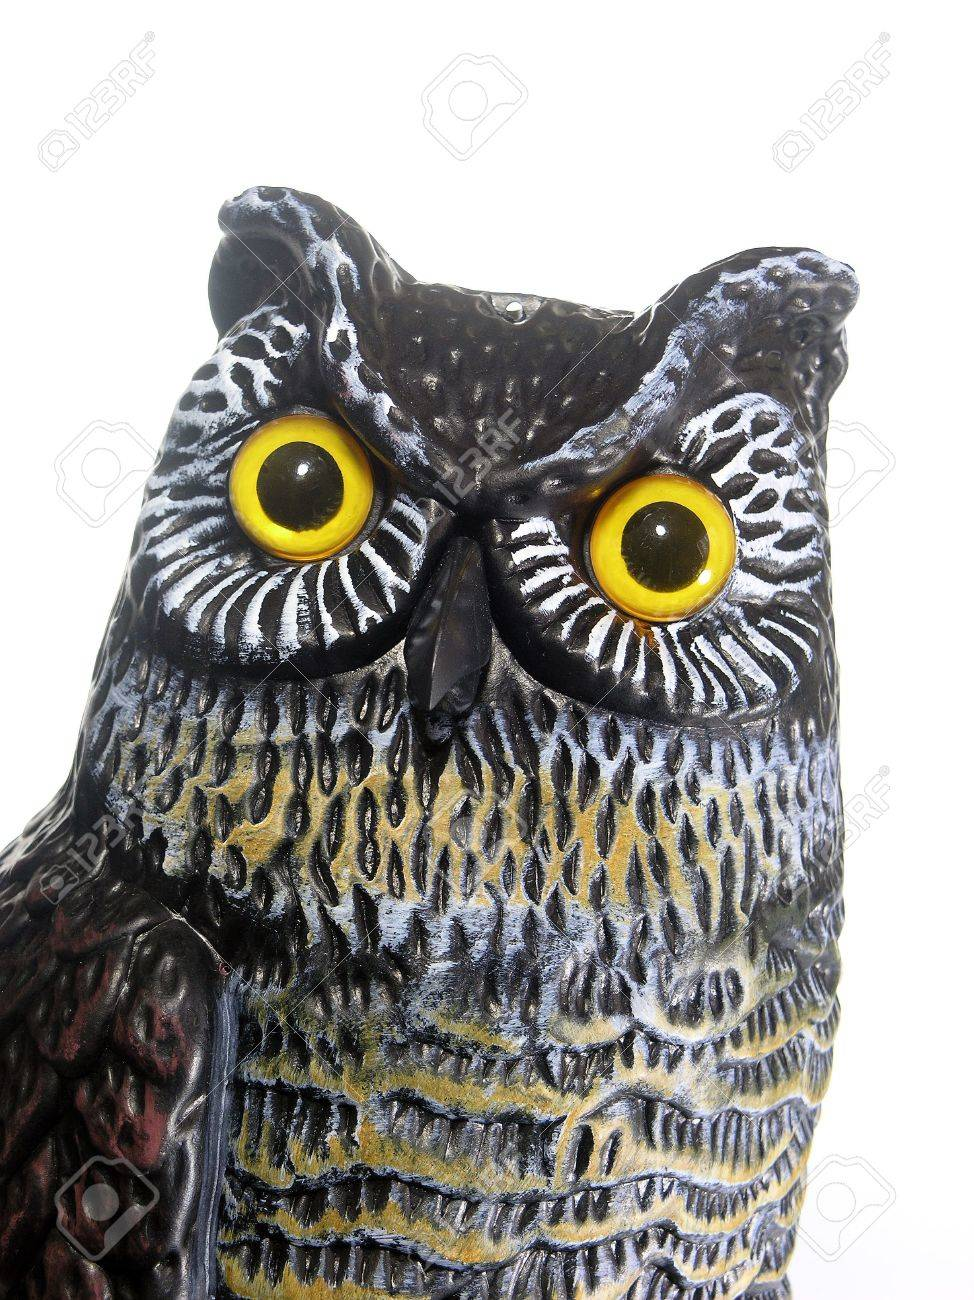 Owl Figure Statue Used In Garden As Pest Control And Scarecrow